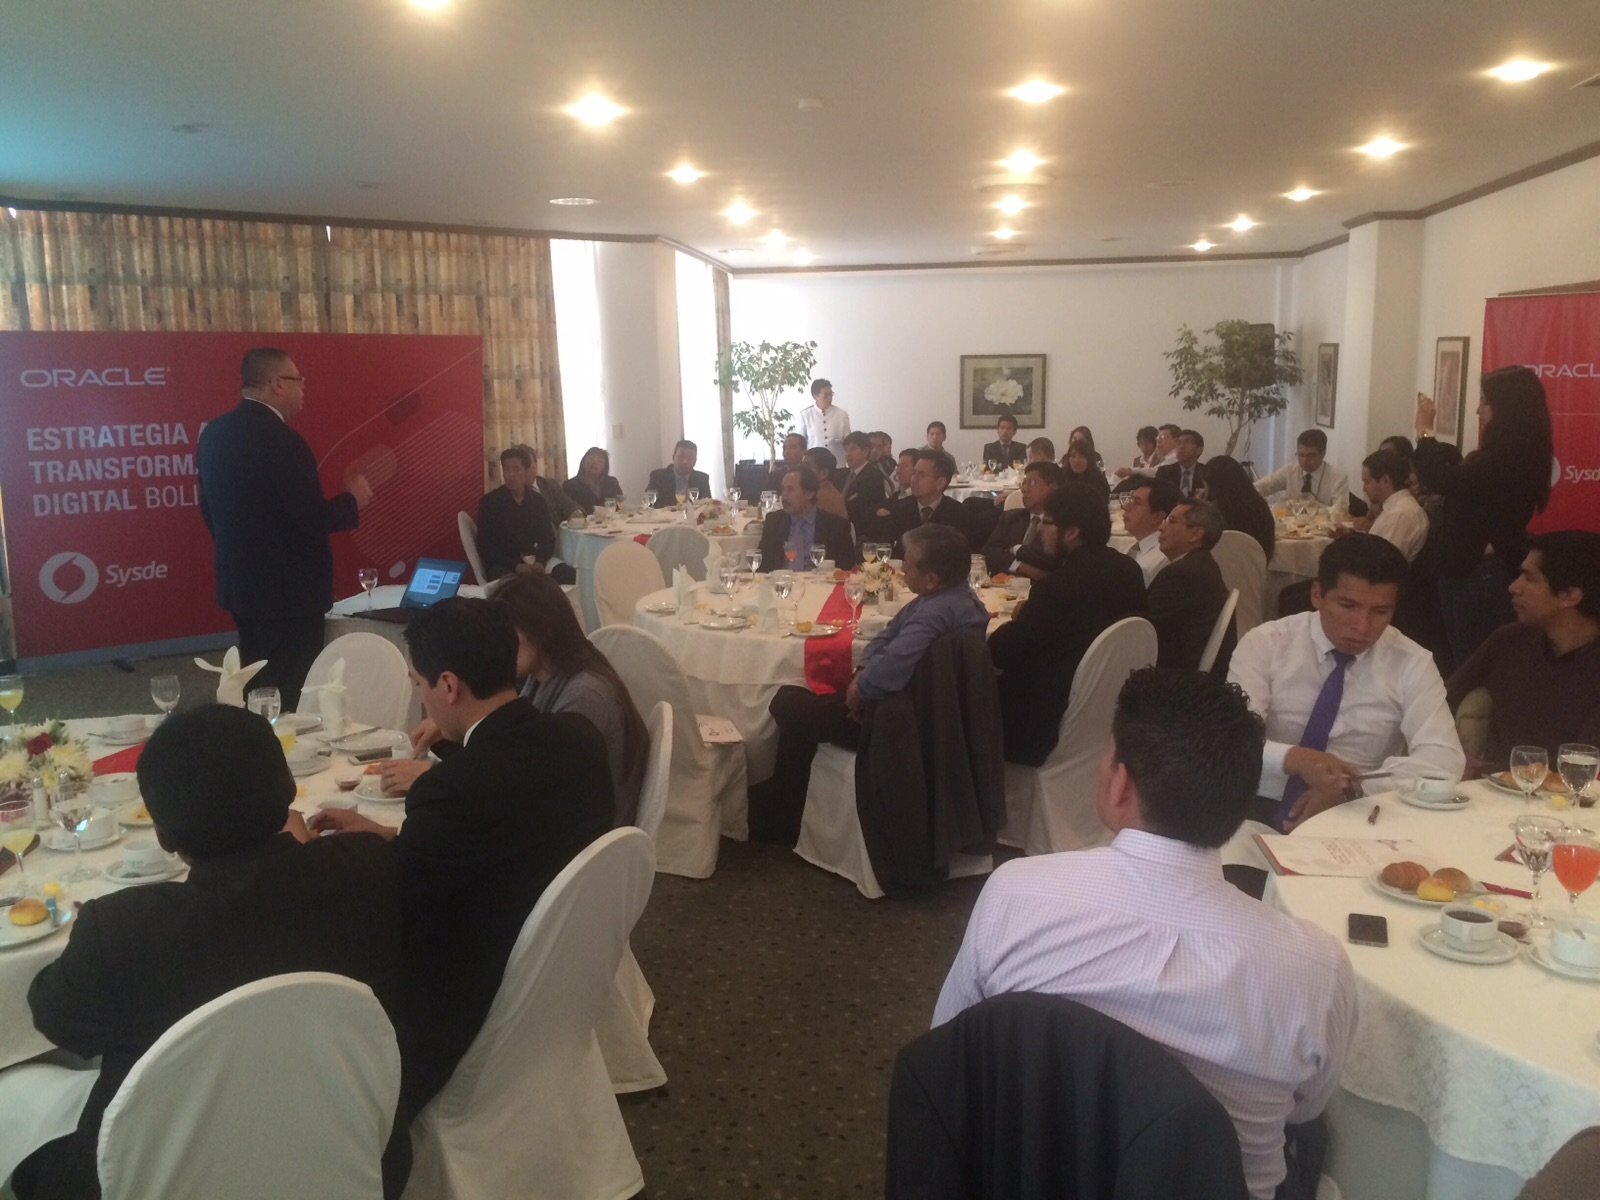 SYSDE-ORACLE - Estrategia a una Transformación Digital Bolivia